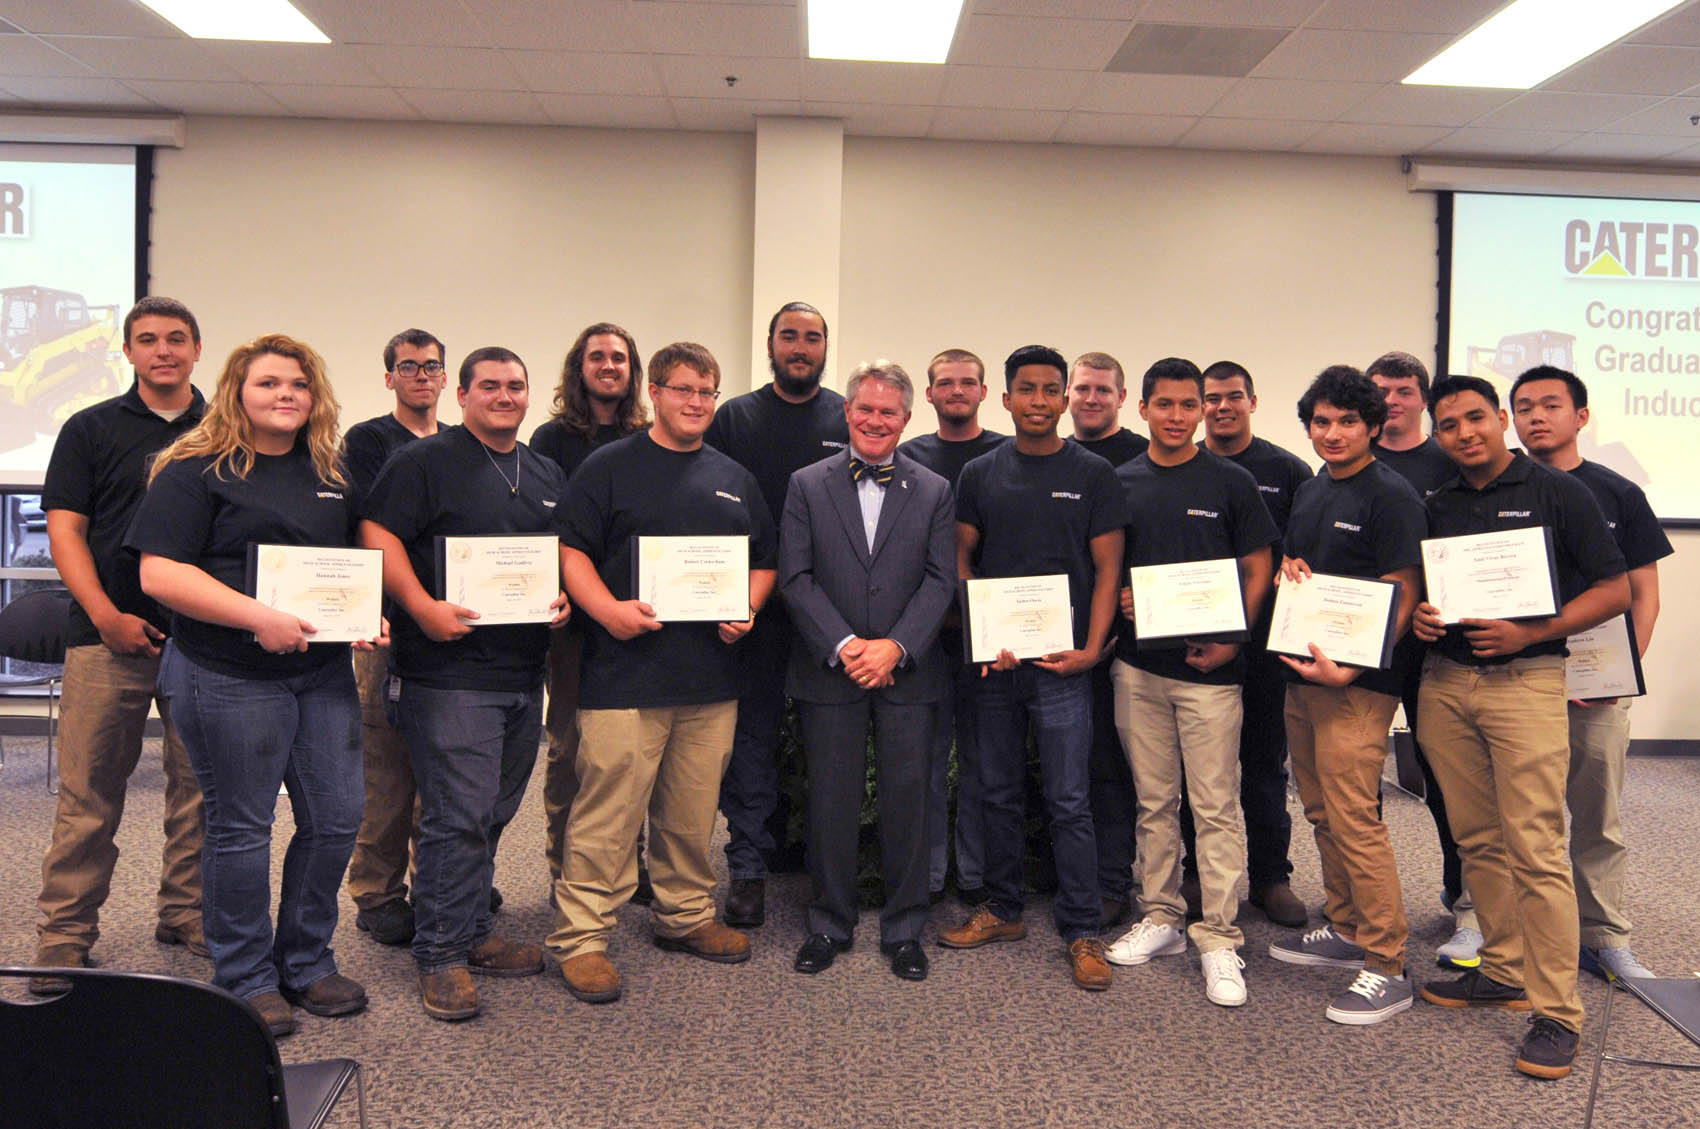 Read the full story, Caterpillar Youth Apprentice graduates, inductees recognized